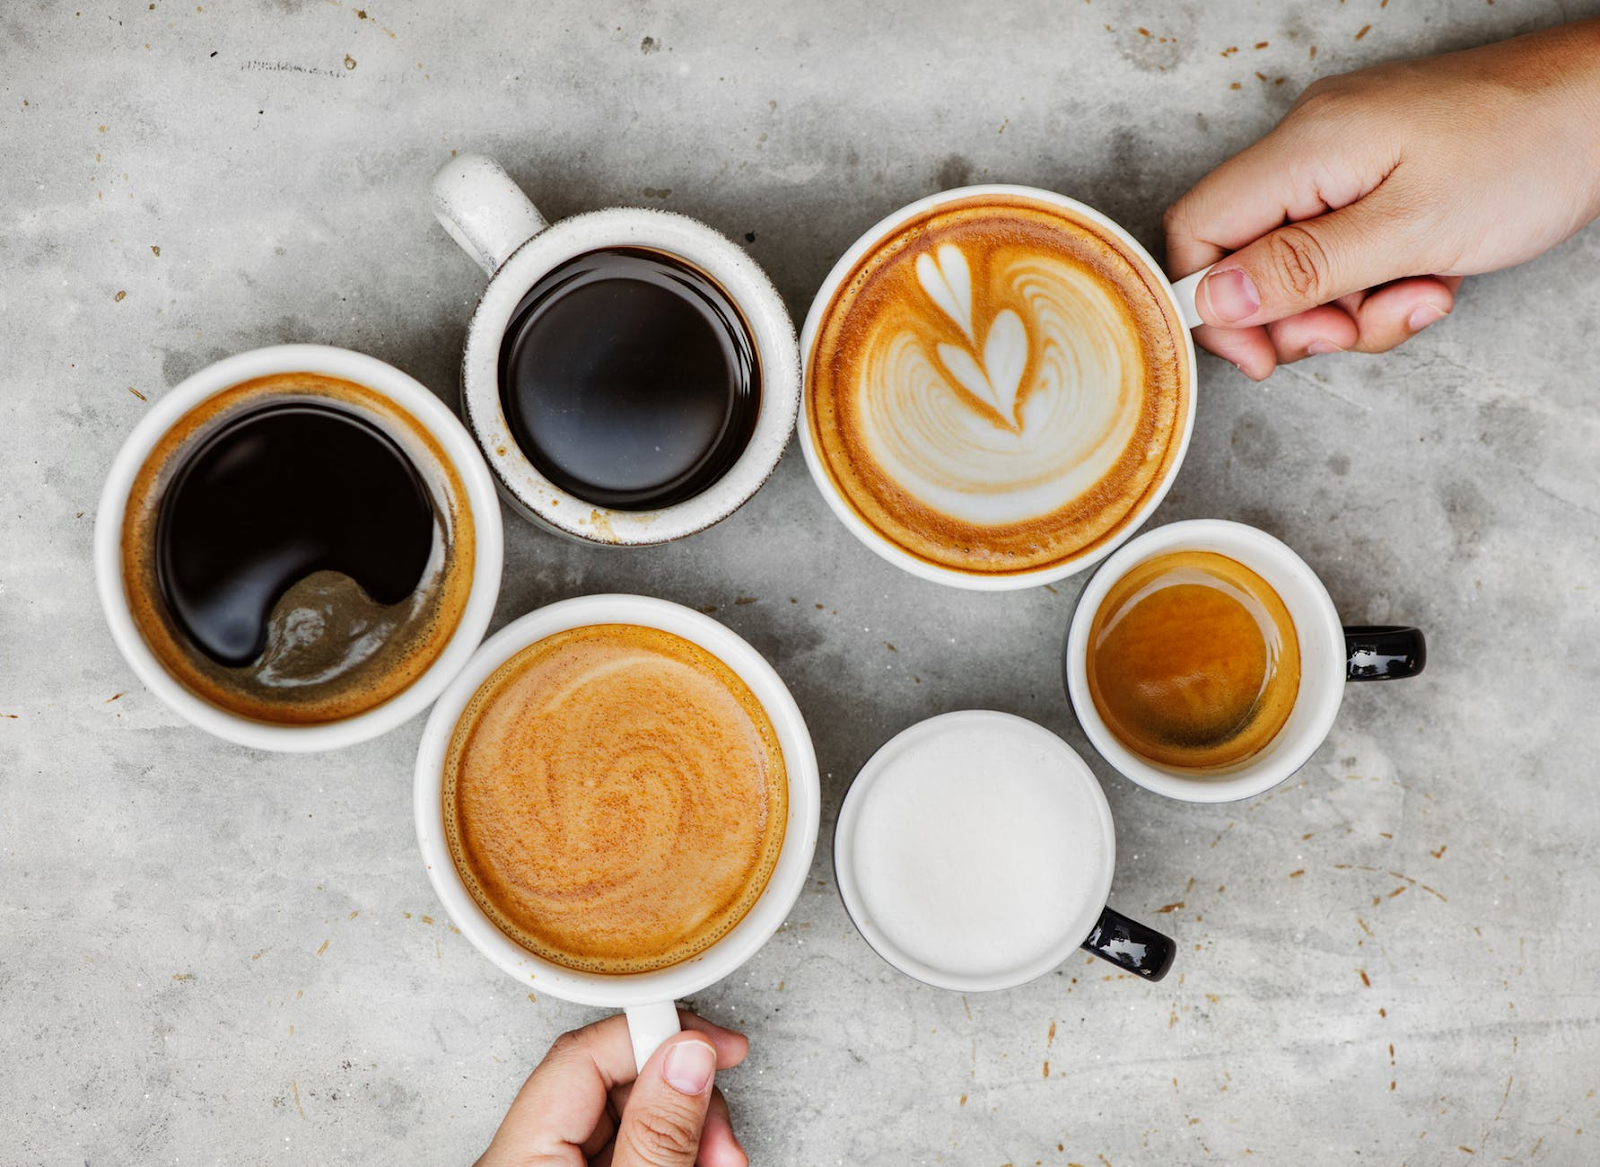 various mugs of coffee, some with latte art